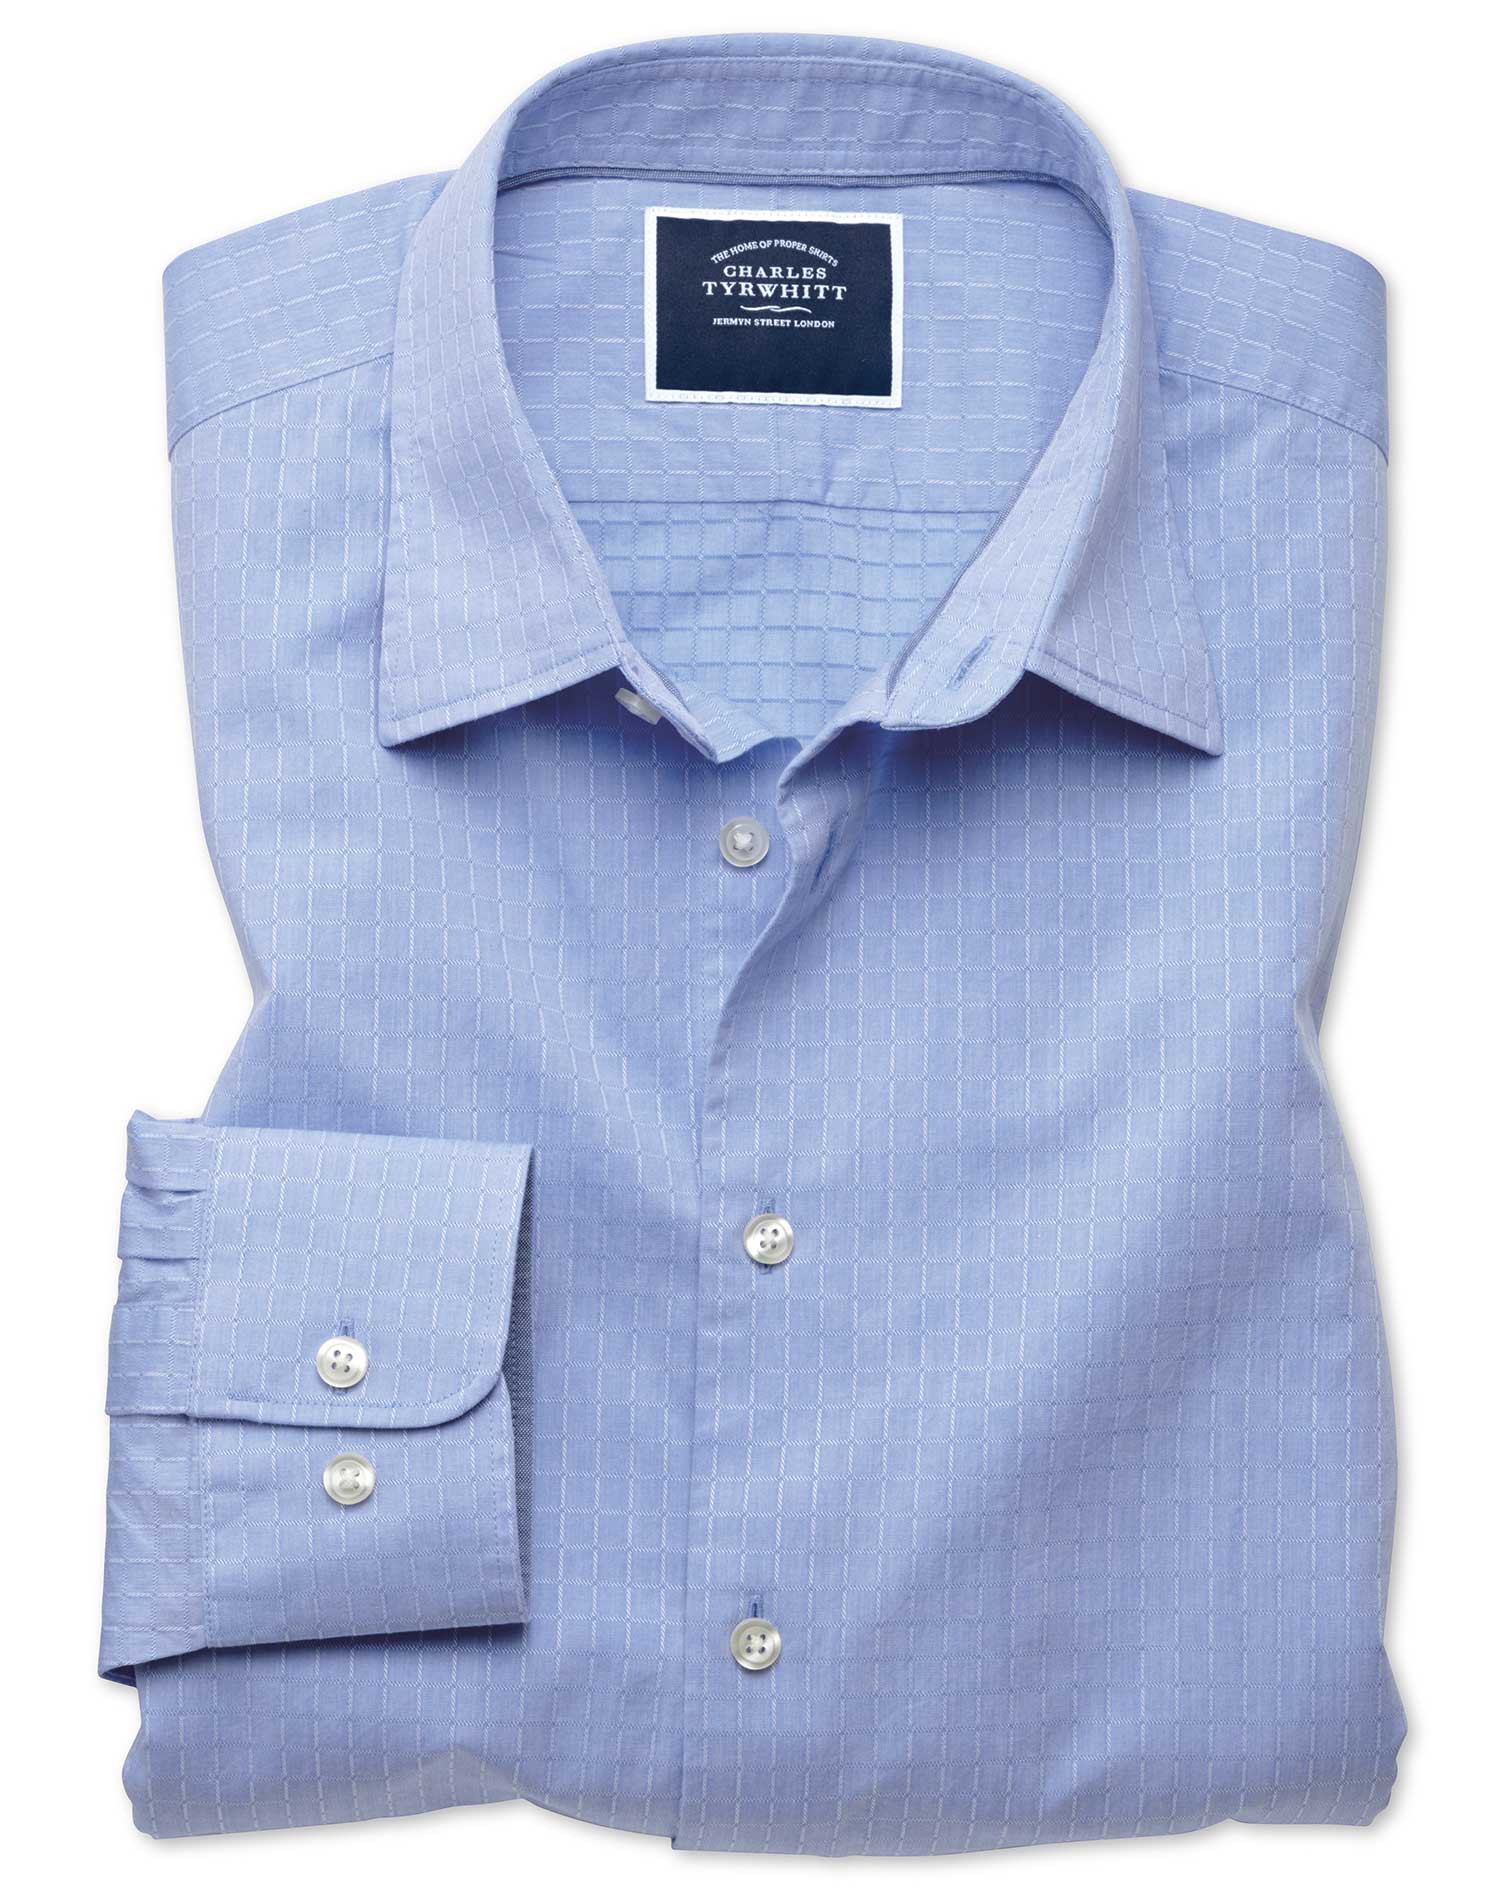 Extra Slim Fit Blue Square Soft Texture Cotton Shirt Single Cuff Size XL by Charles Tyrwhitt